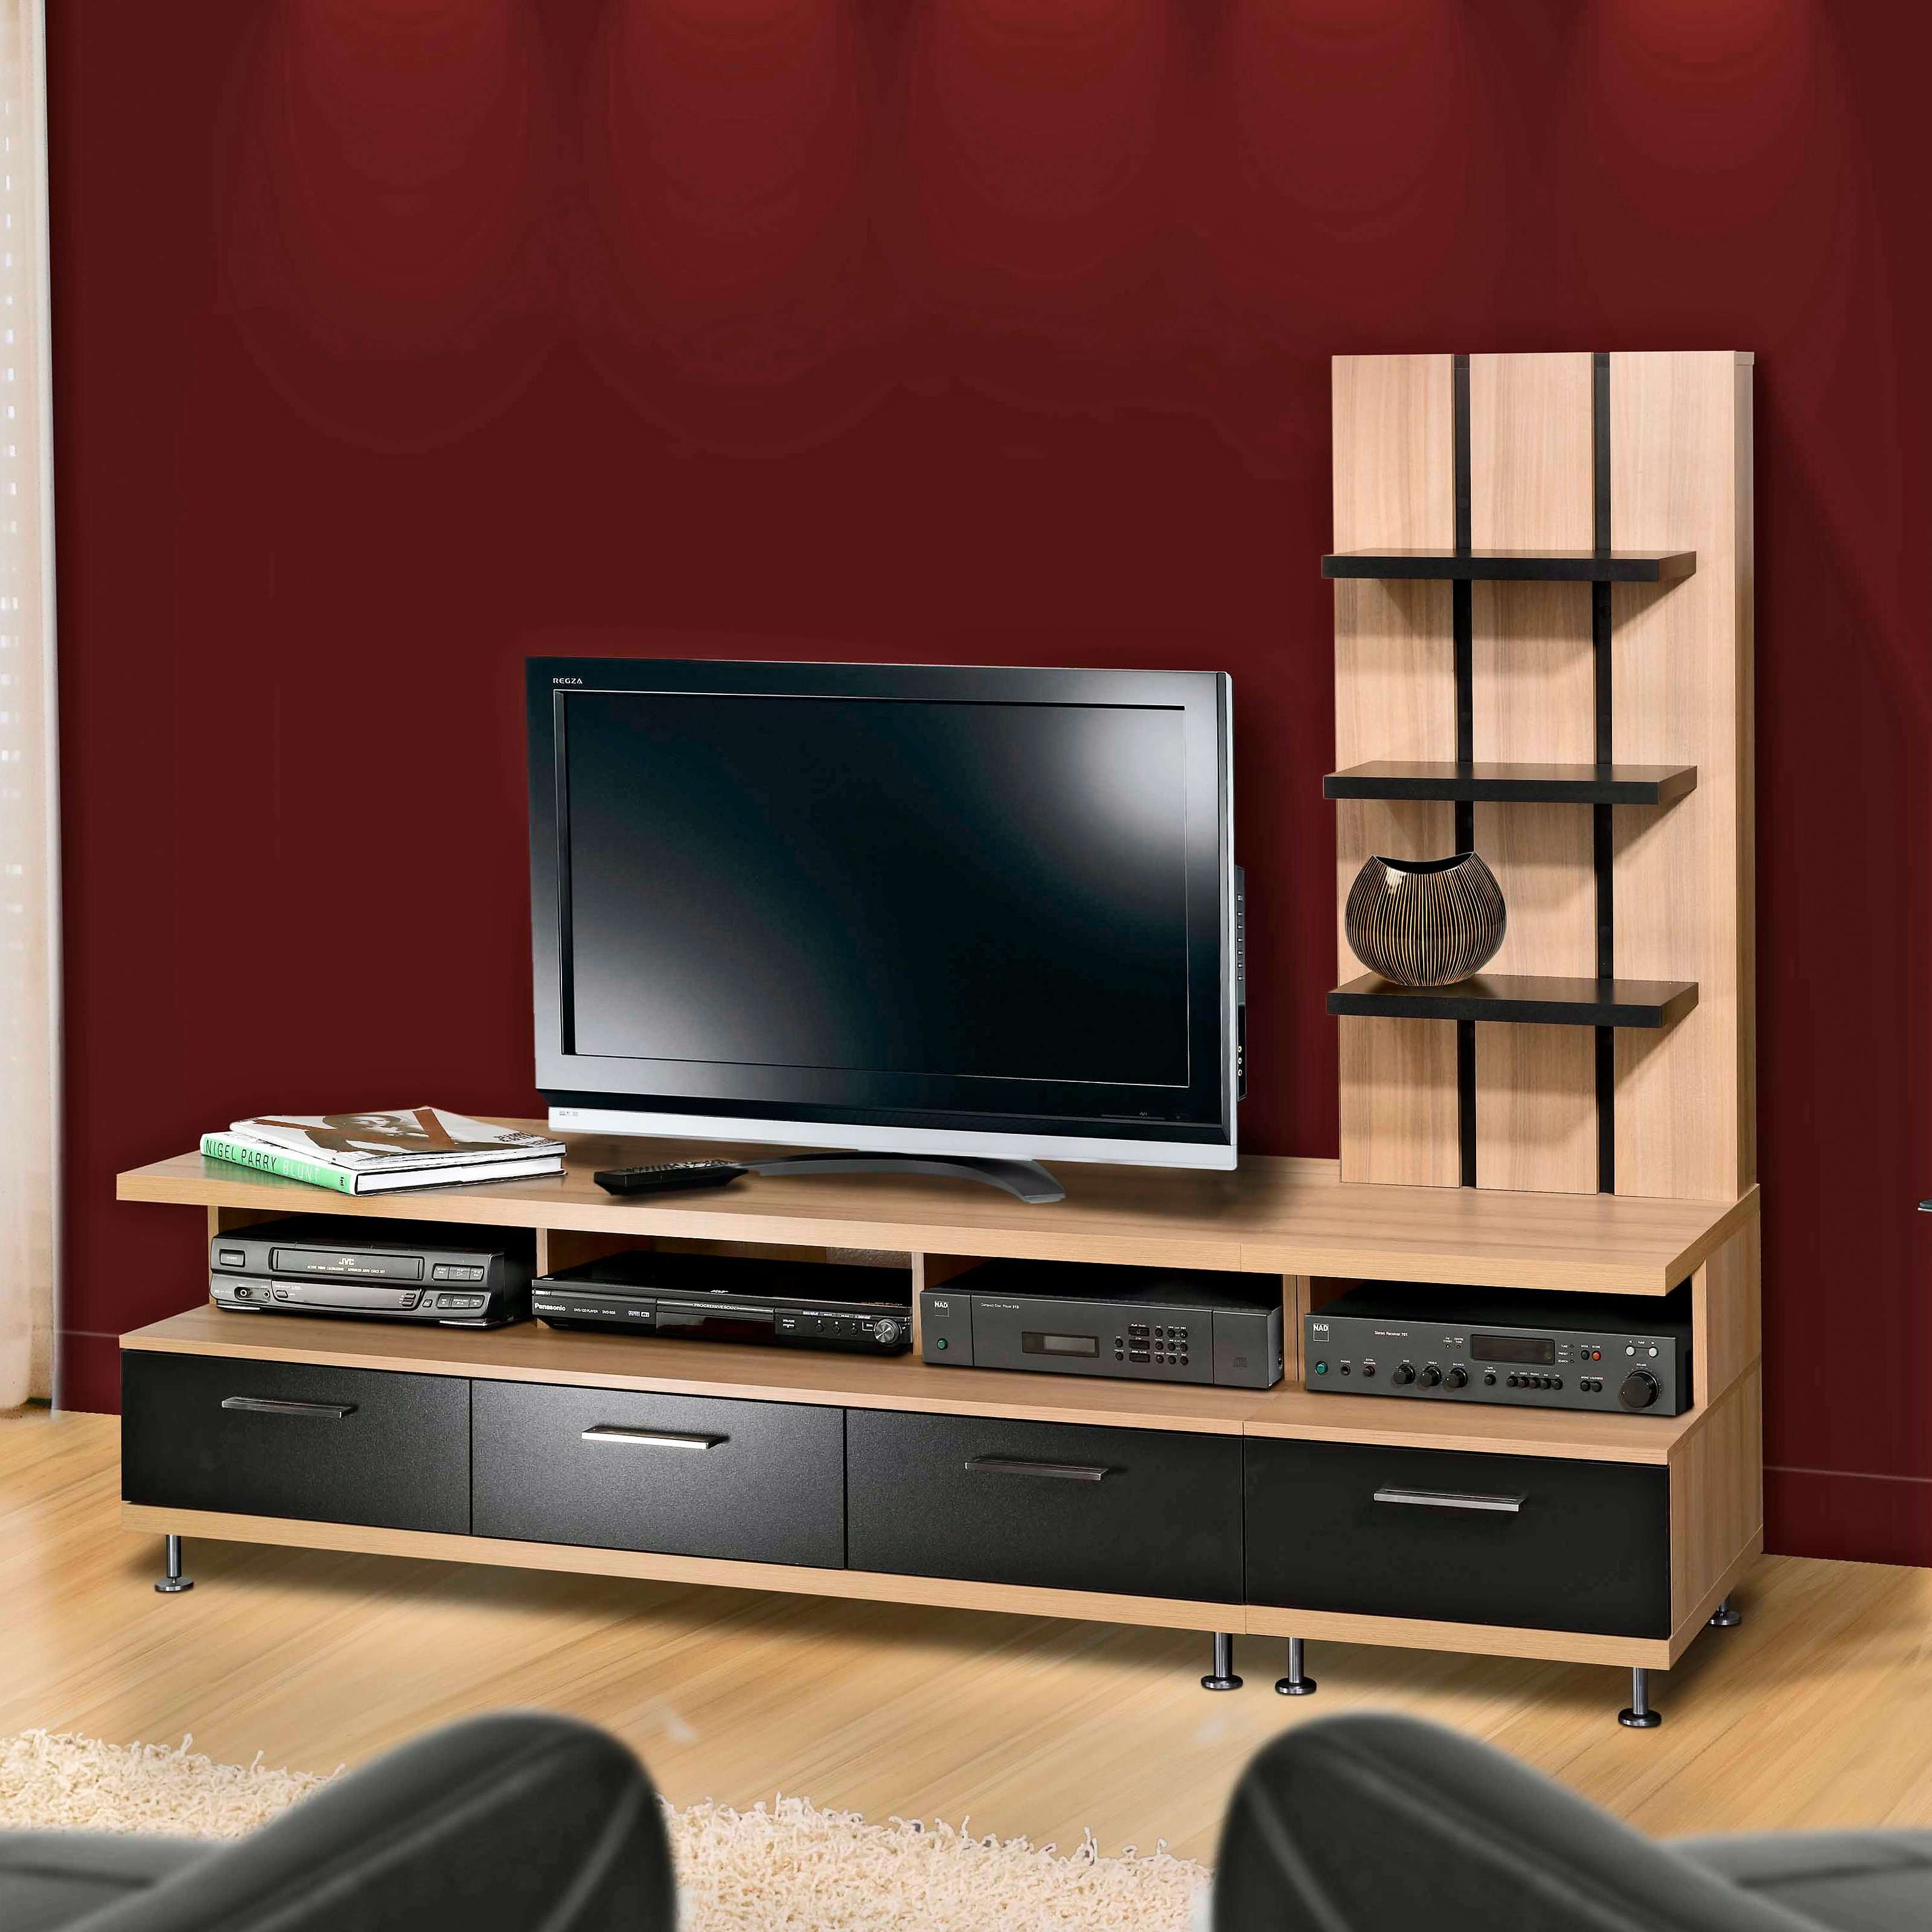 Media Stands For Flat Screen Tvs Tv Wall Units Screens Elegant And In Stylish Tv Stands (View 15 of 15)